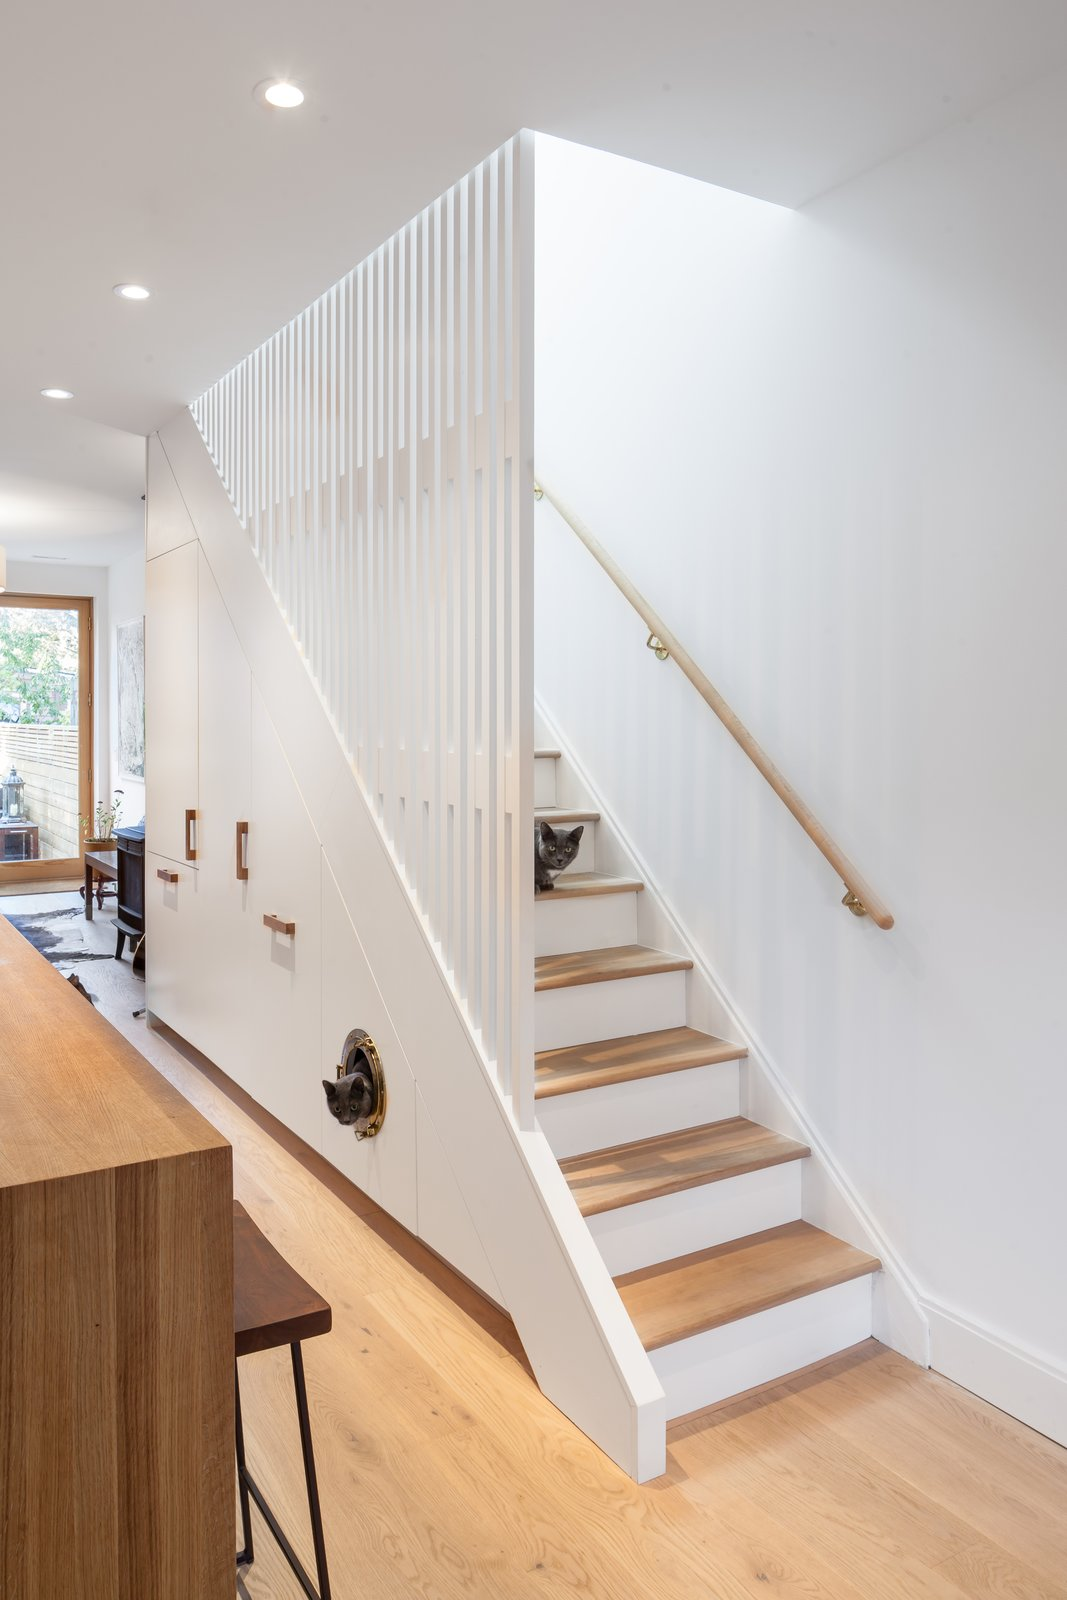 Ritchie Rowhouse staircase with built-in cat nook